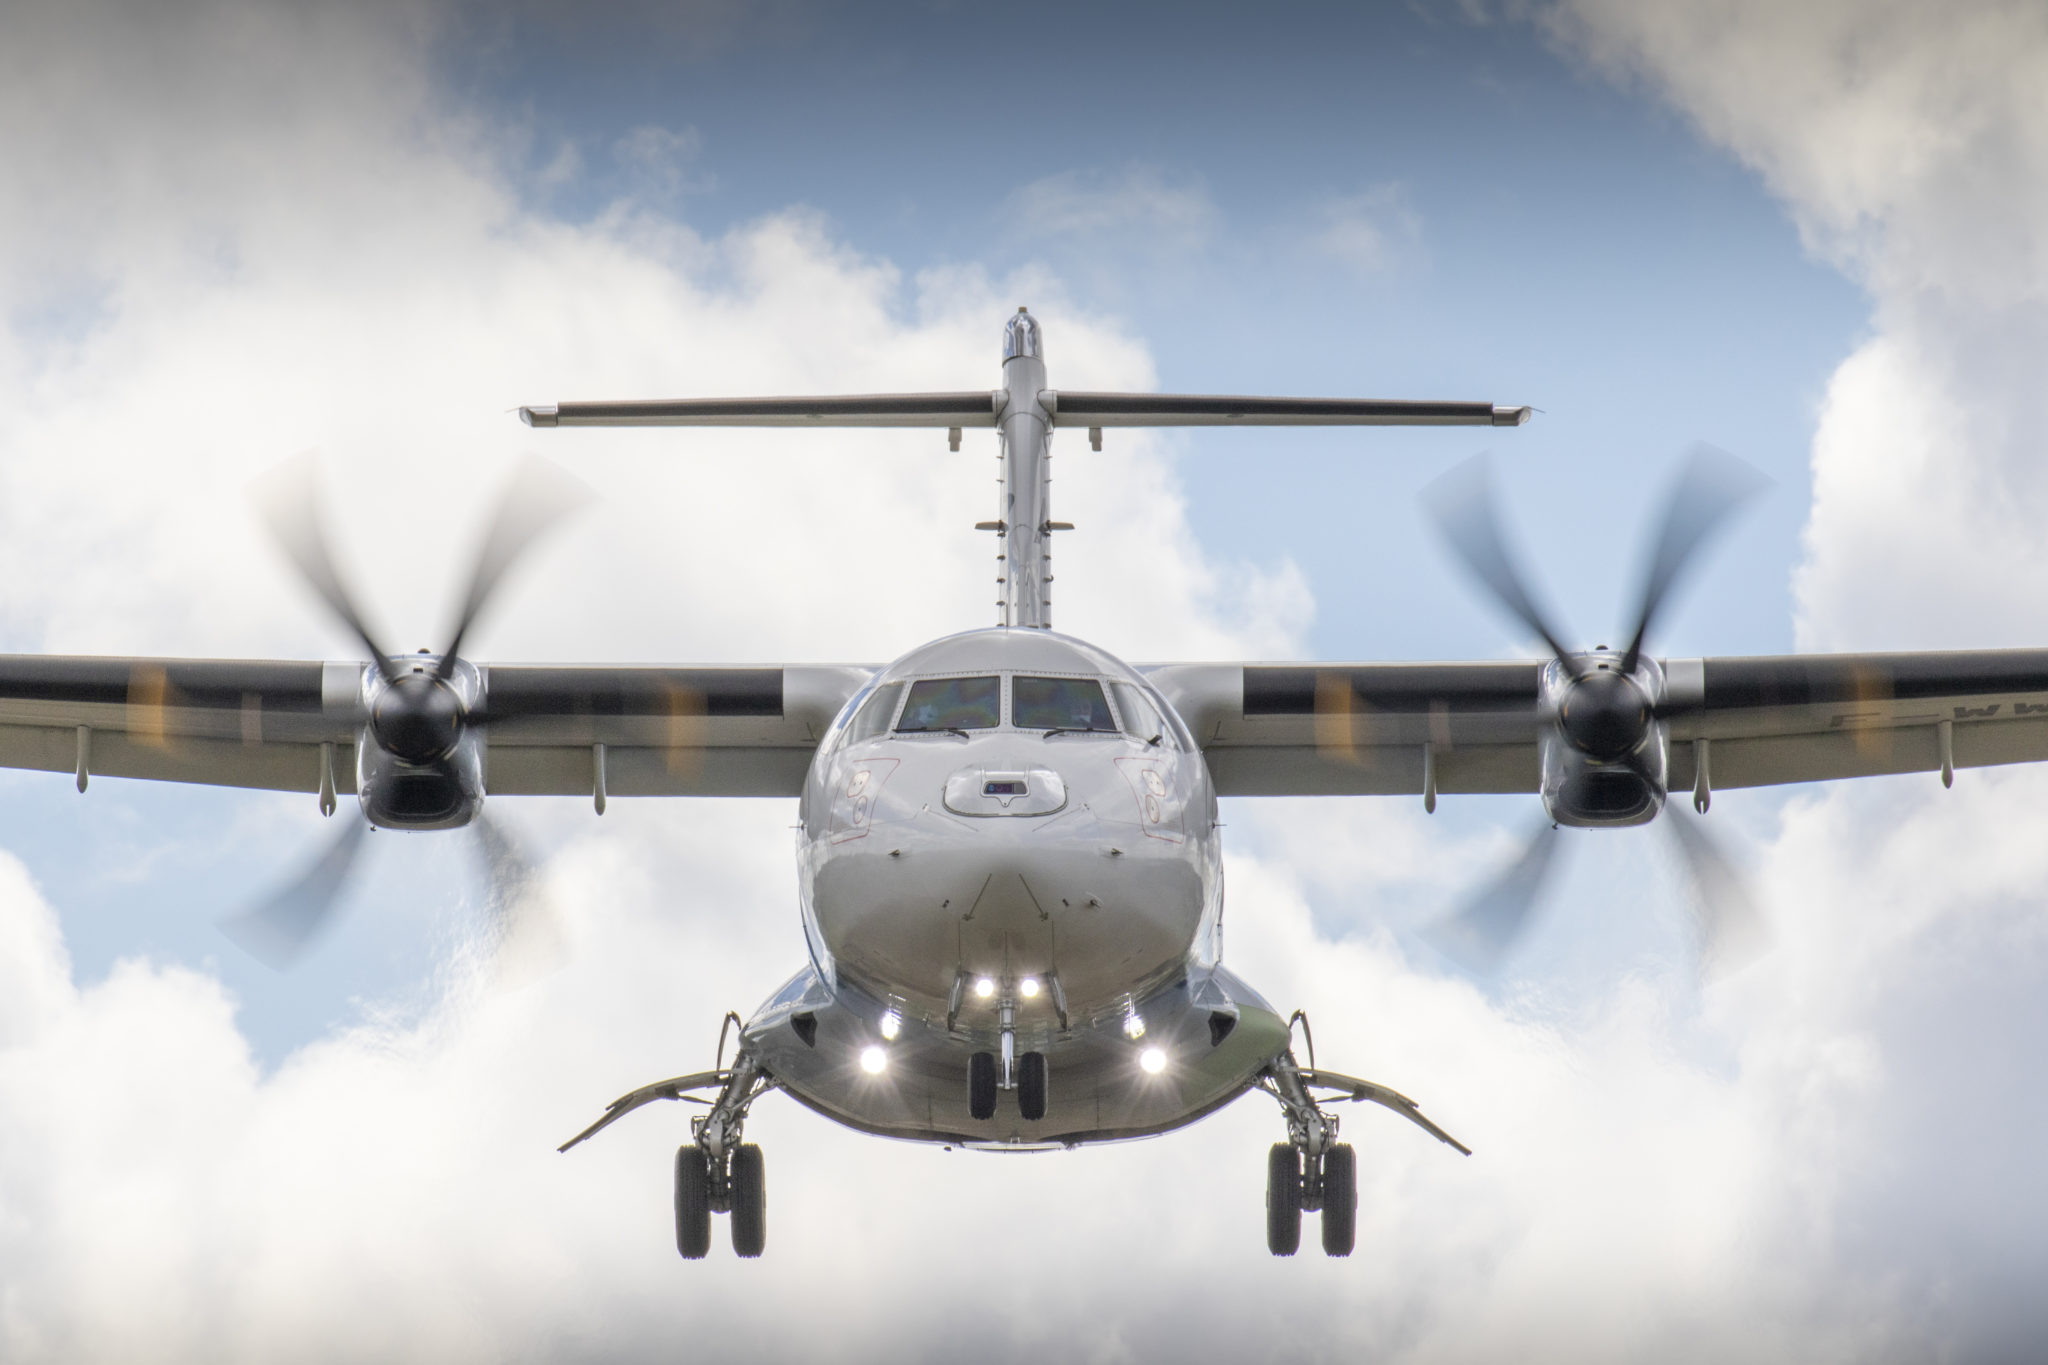 Throwback: When Comair Flew ATR Turboprops